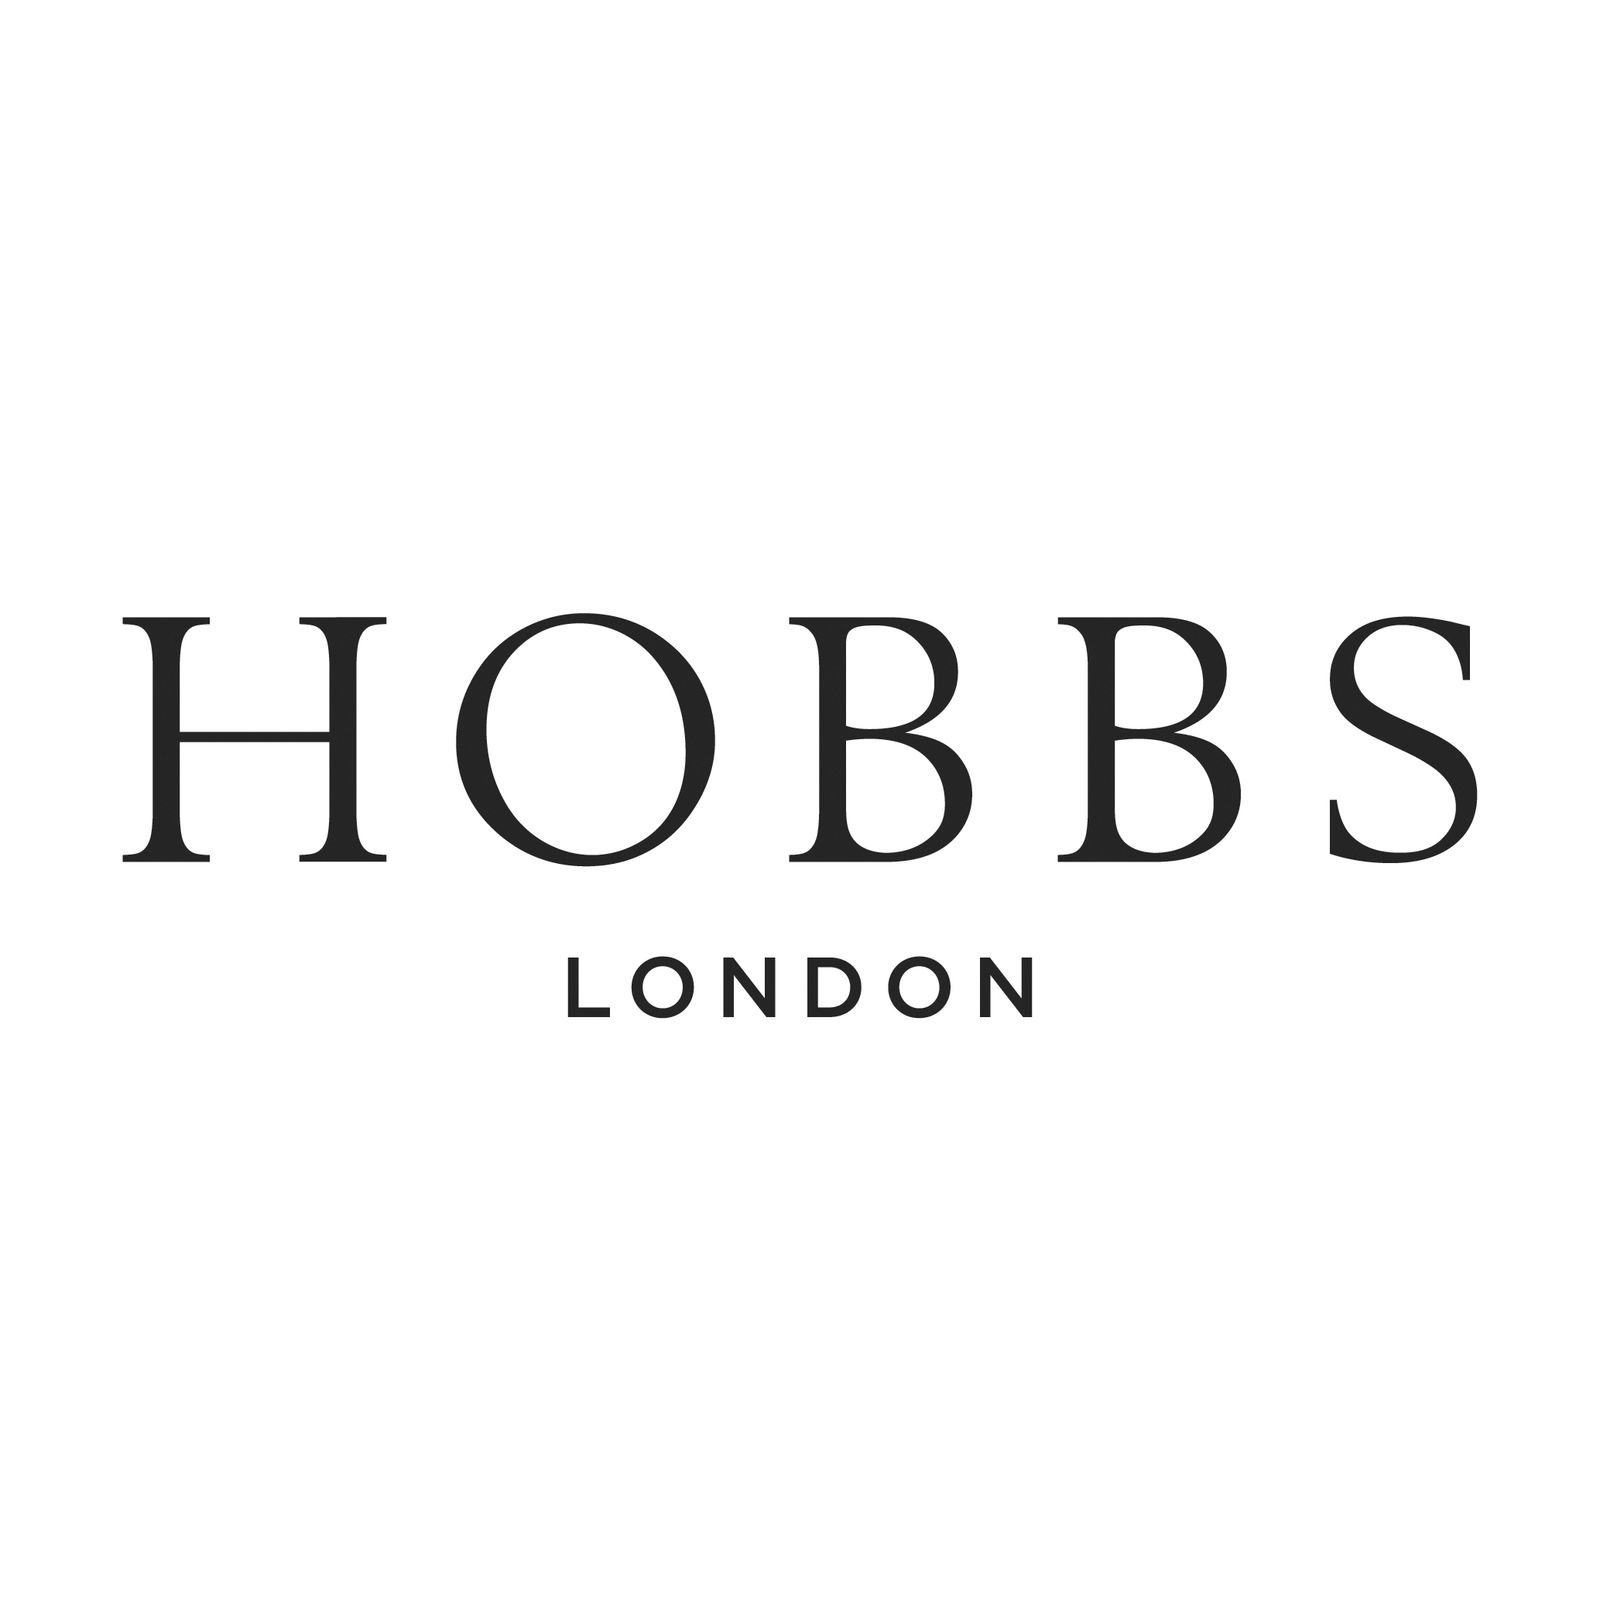 HOBBS London (Image 1)